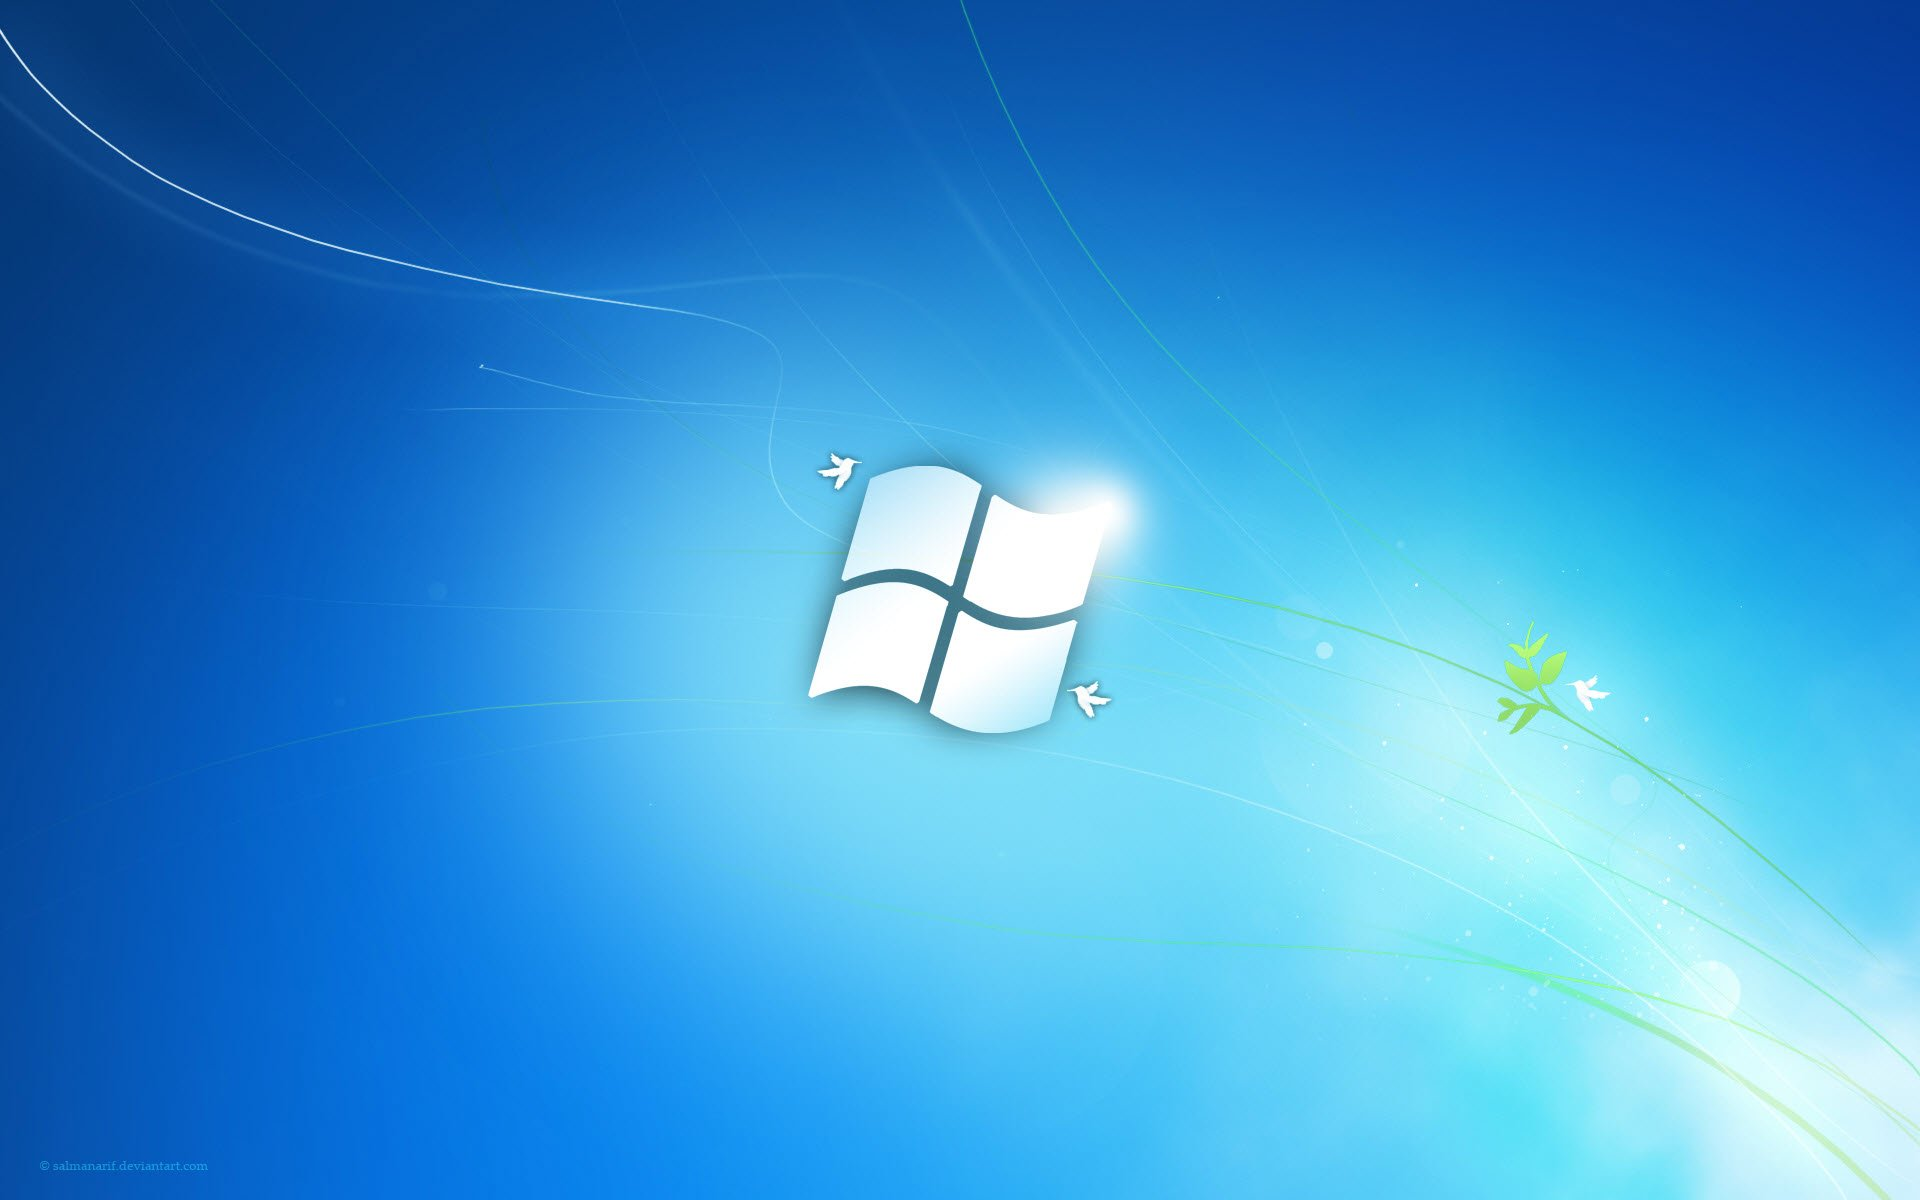 windows 7 wallpapers windows 7 wallpapers windows 7 wallpapers 1920x1200